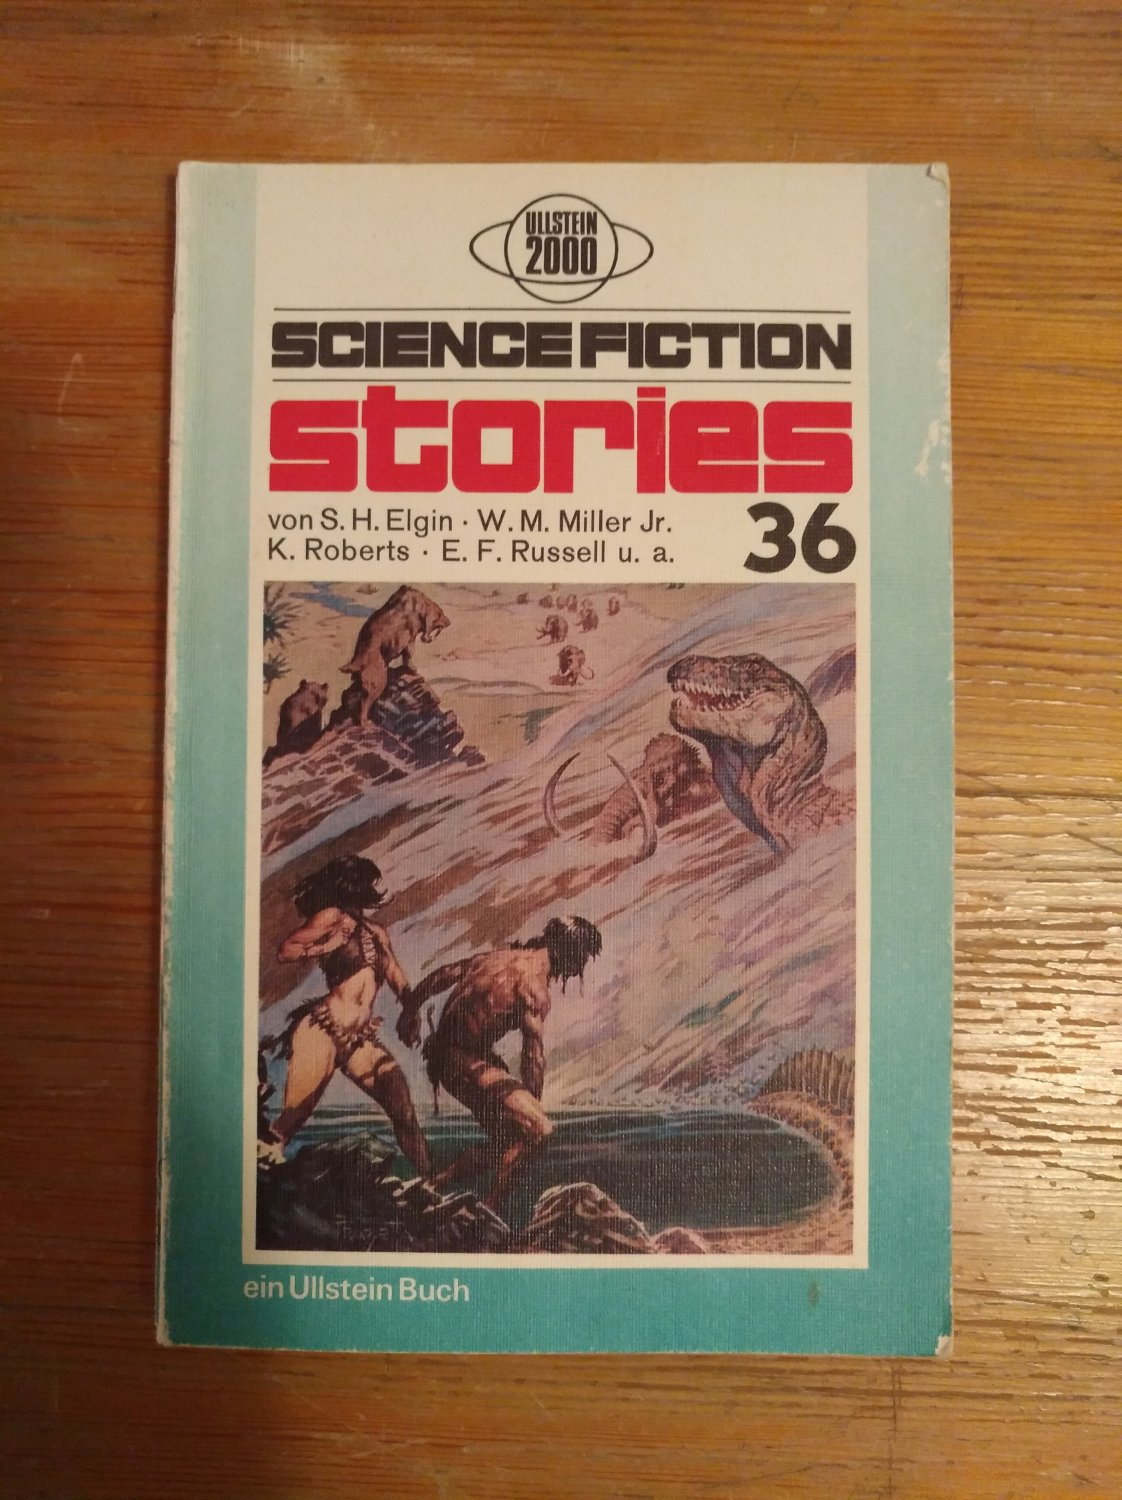 Science Fiction stories 36 - Elgin, S. H. / Miller Jr., W. M. / Roberts, K. / Russell, E. F. u. a.